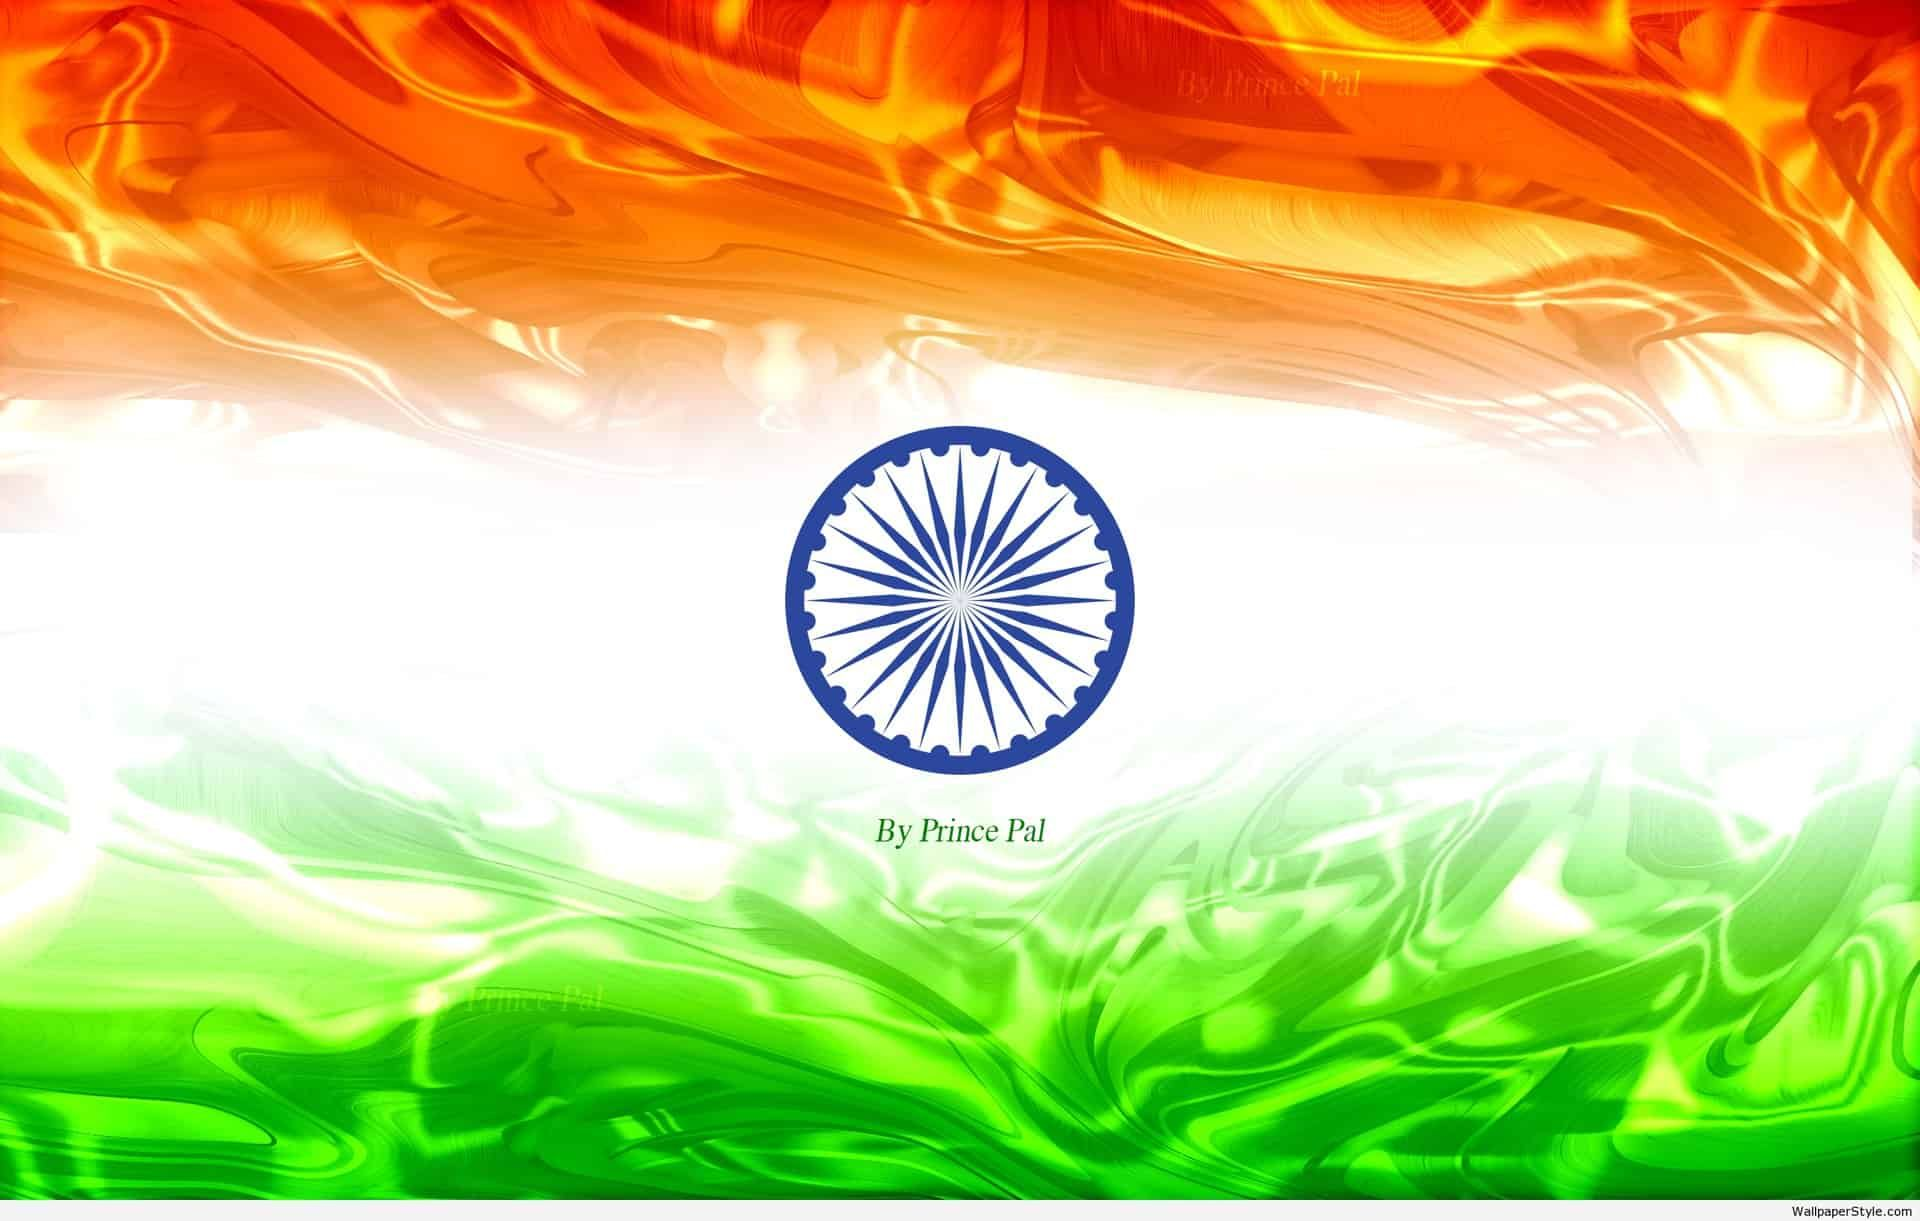 Pin By Julia On Hd Wallpapers Indian Flag Wallpaper Indian Flag